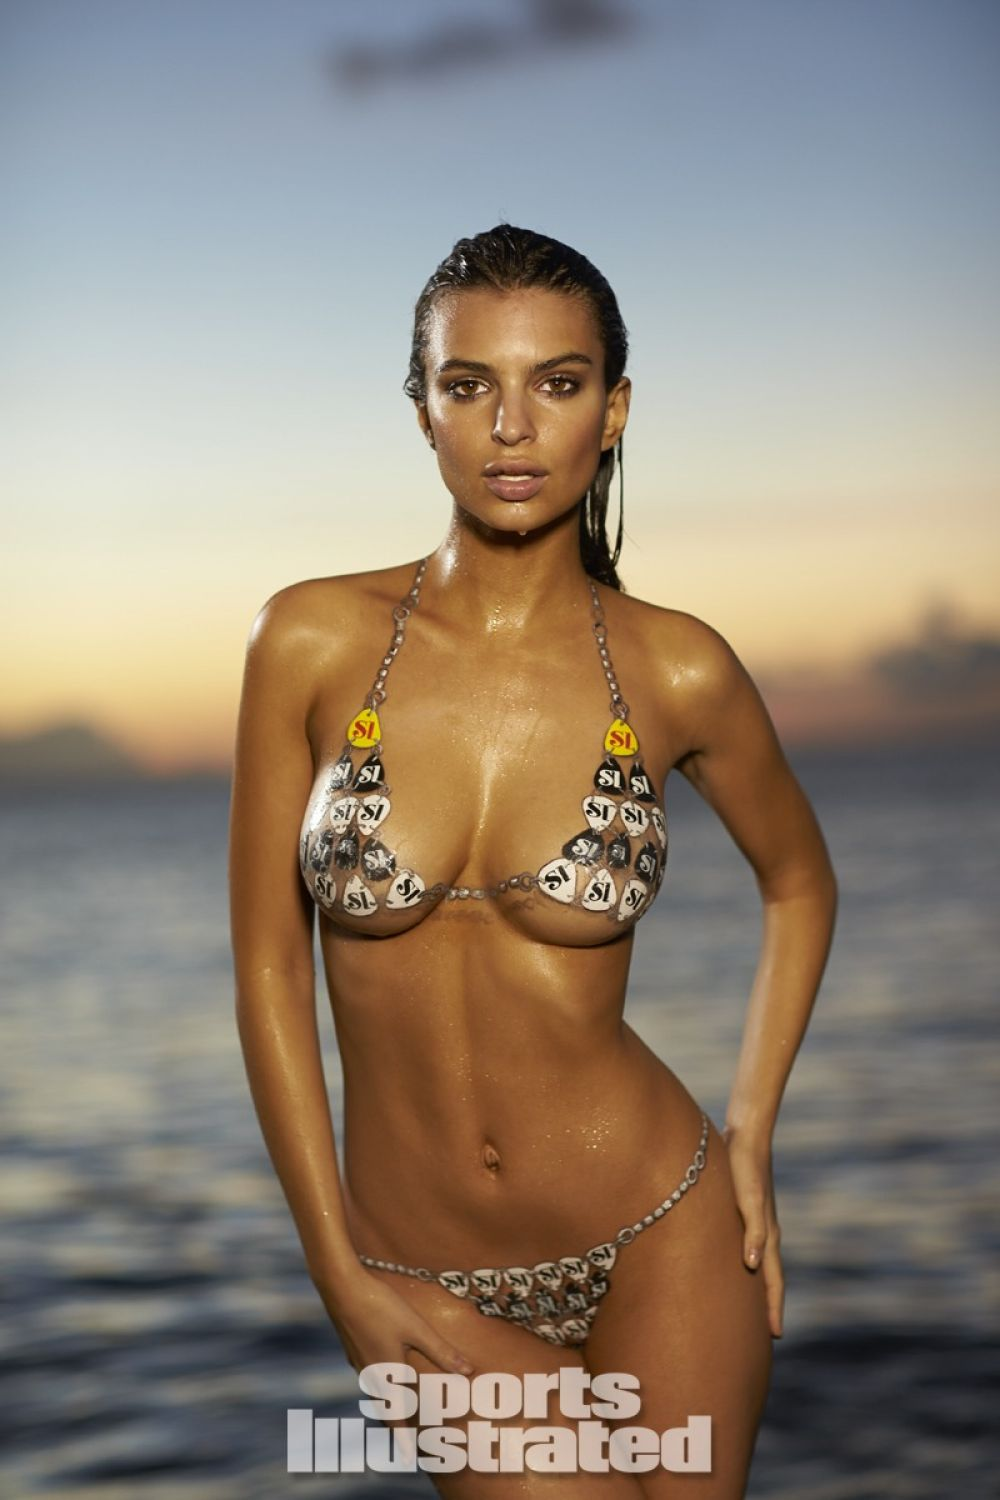 emily-ratajkowski-in-sports-illustrated-2014-swimsuit-issue_2.jpg - 108.22 KB